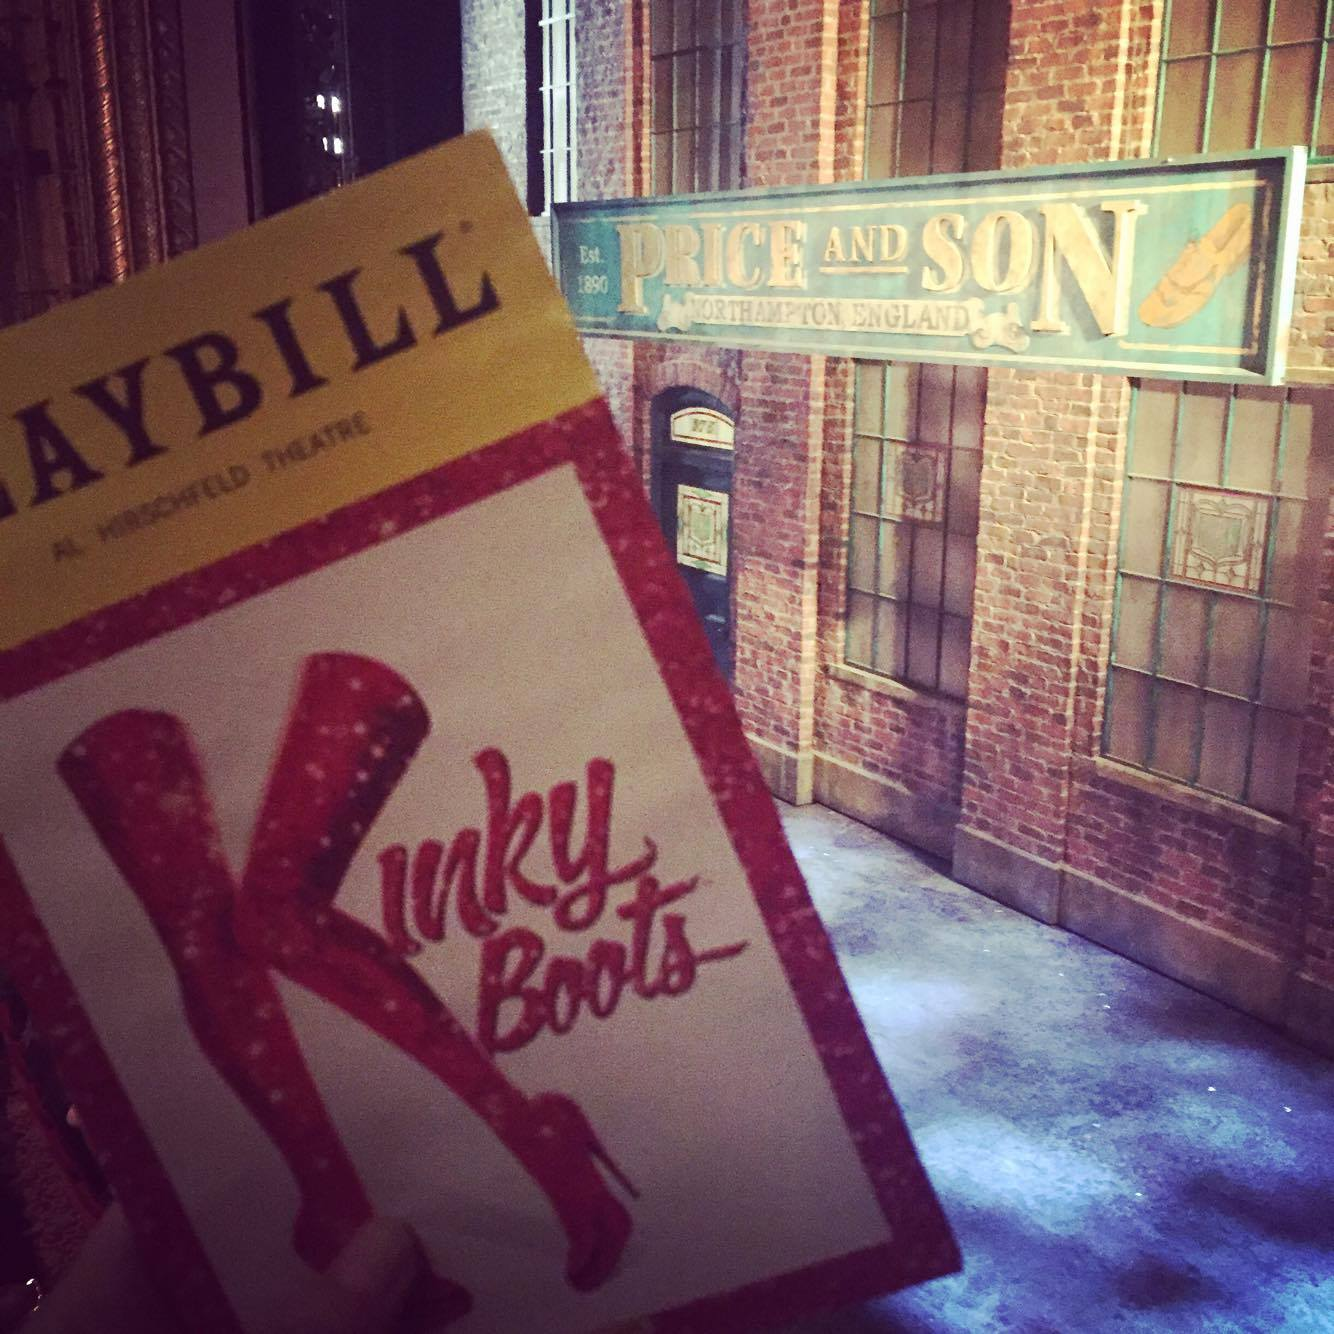 Kinky Boots, with Todrick Hall